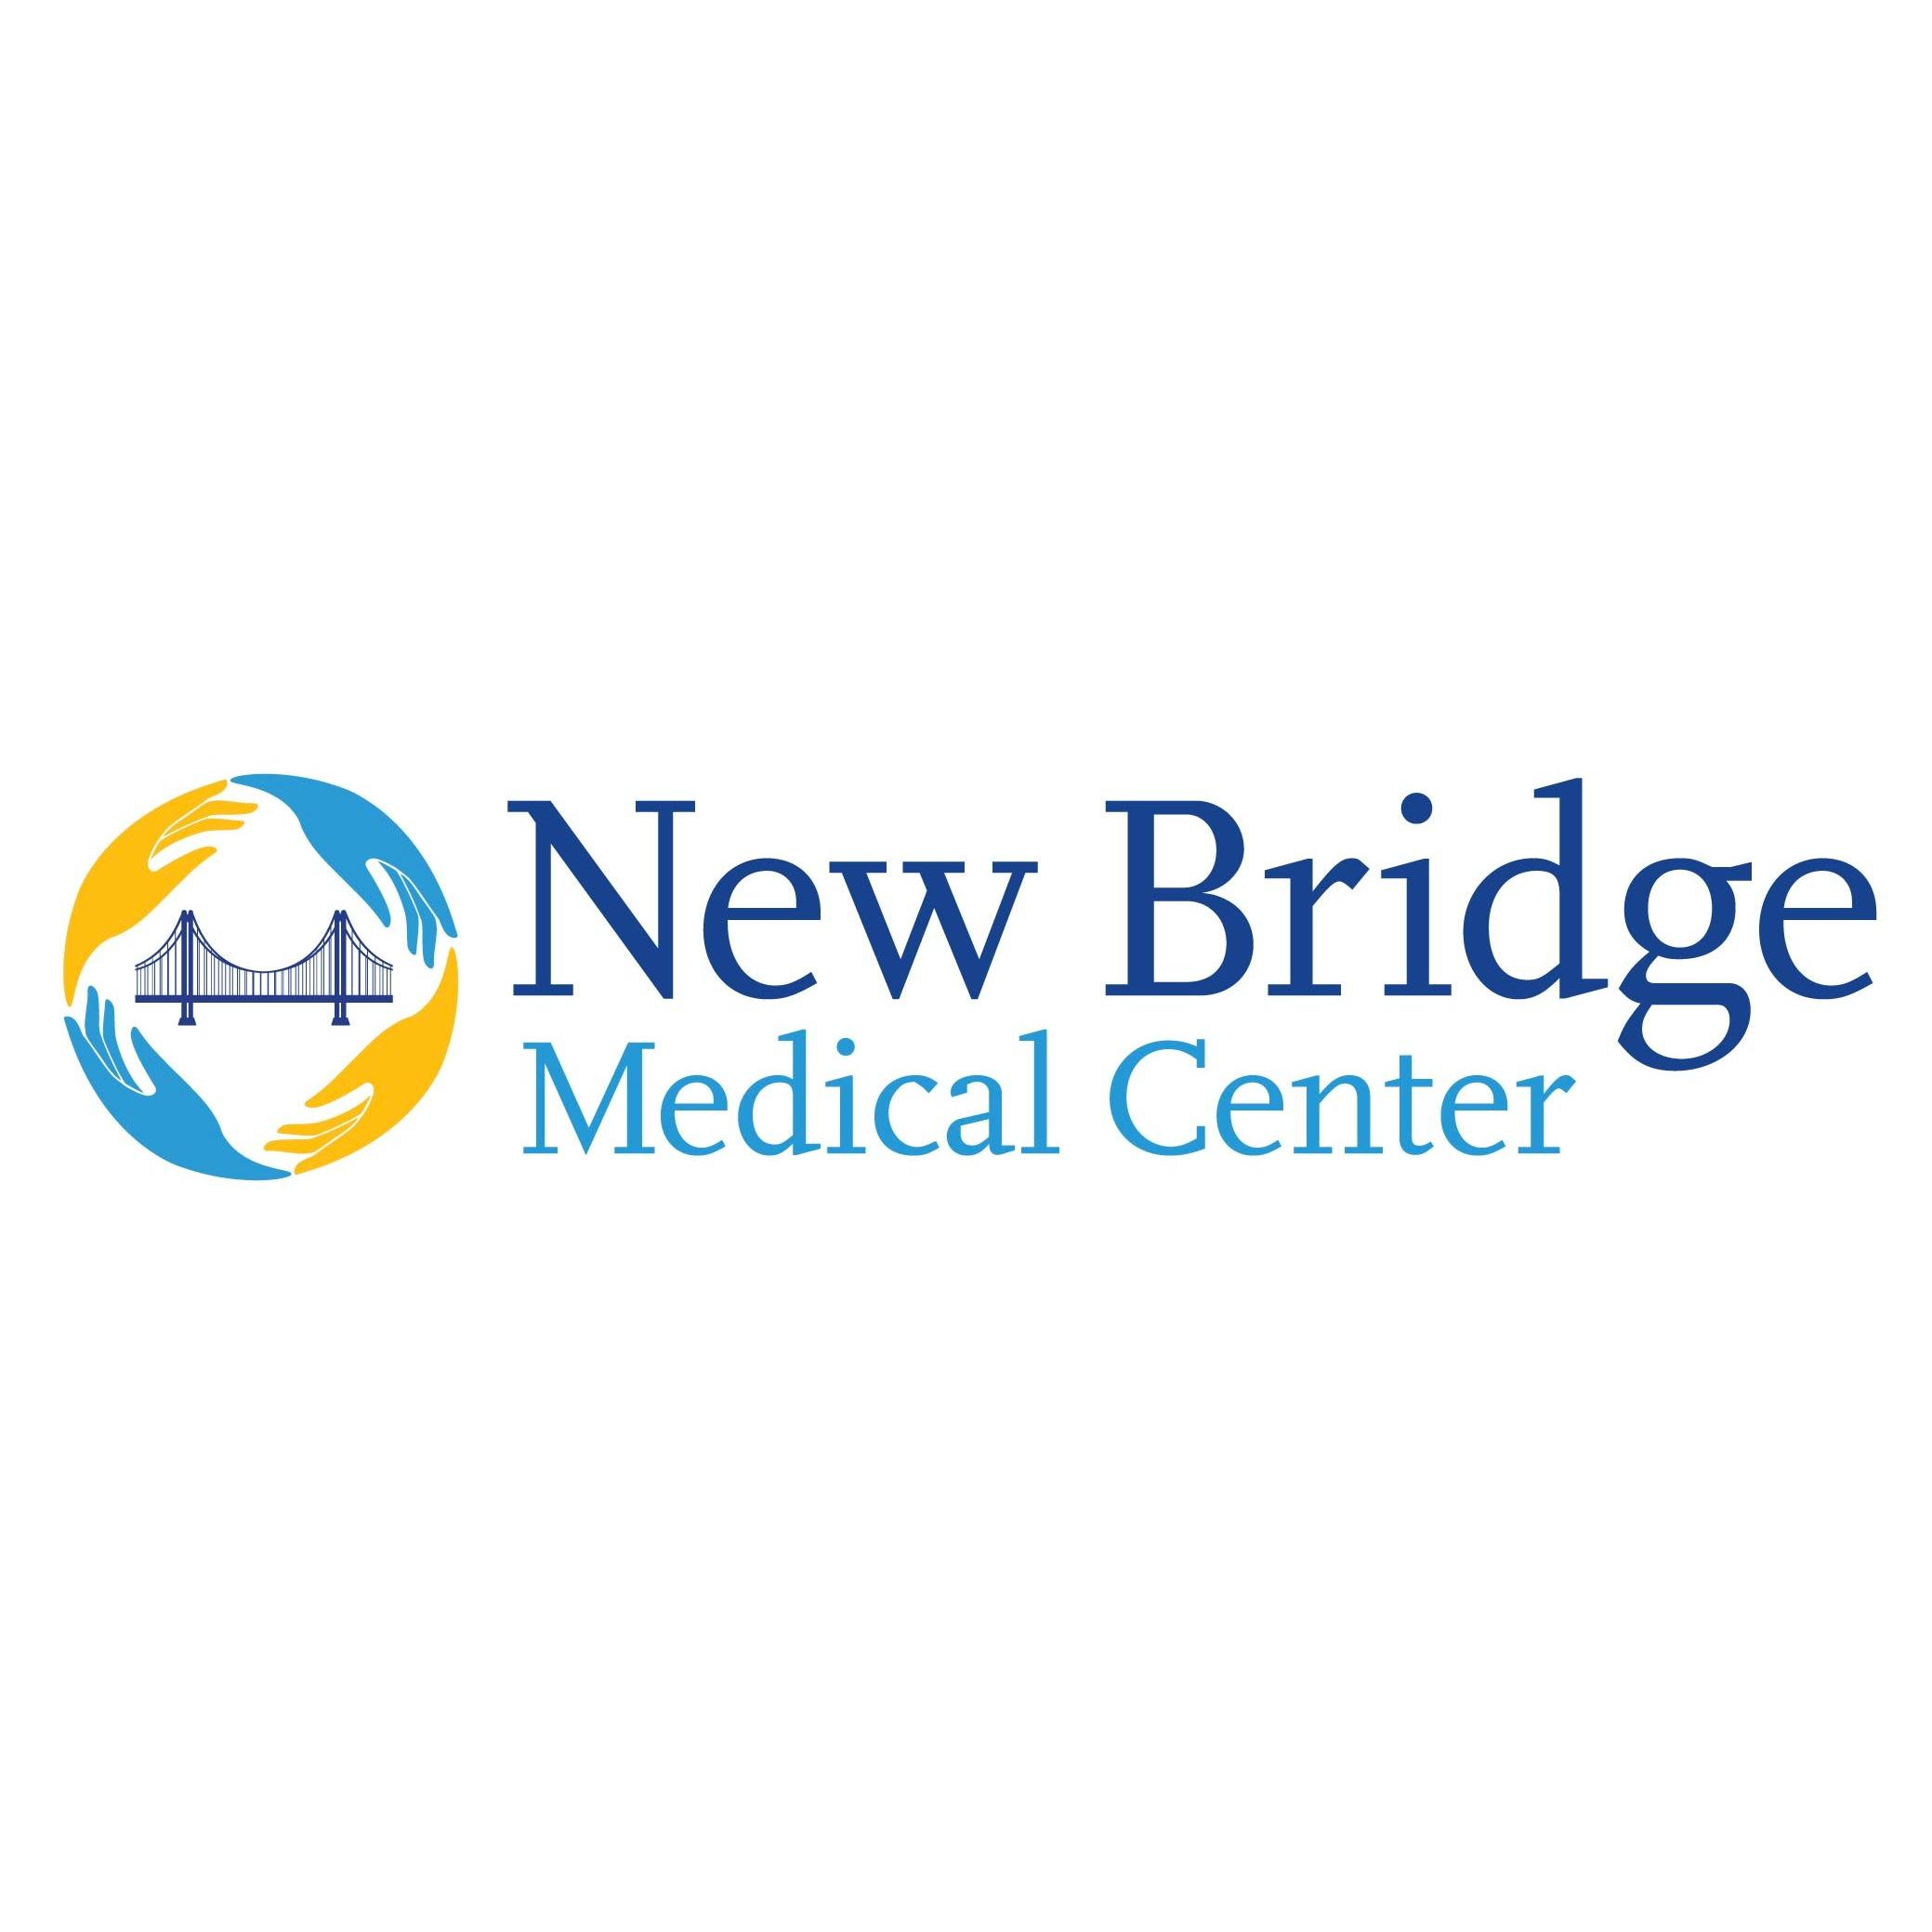 New Bridge Medical Center